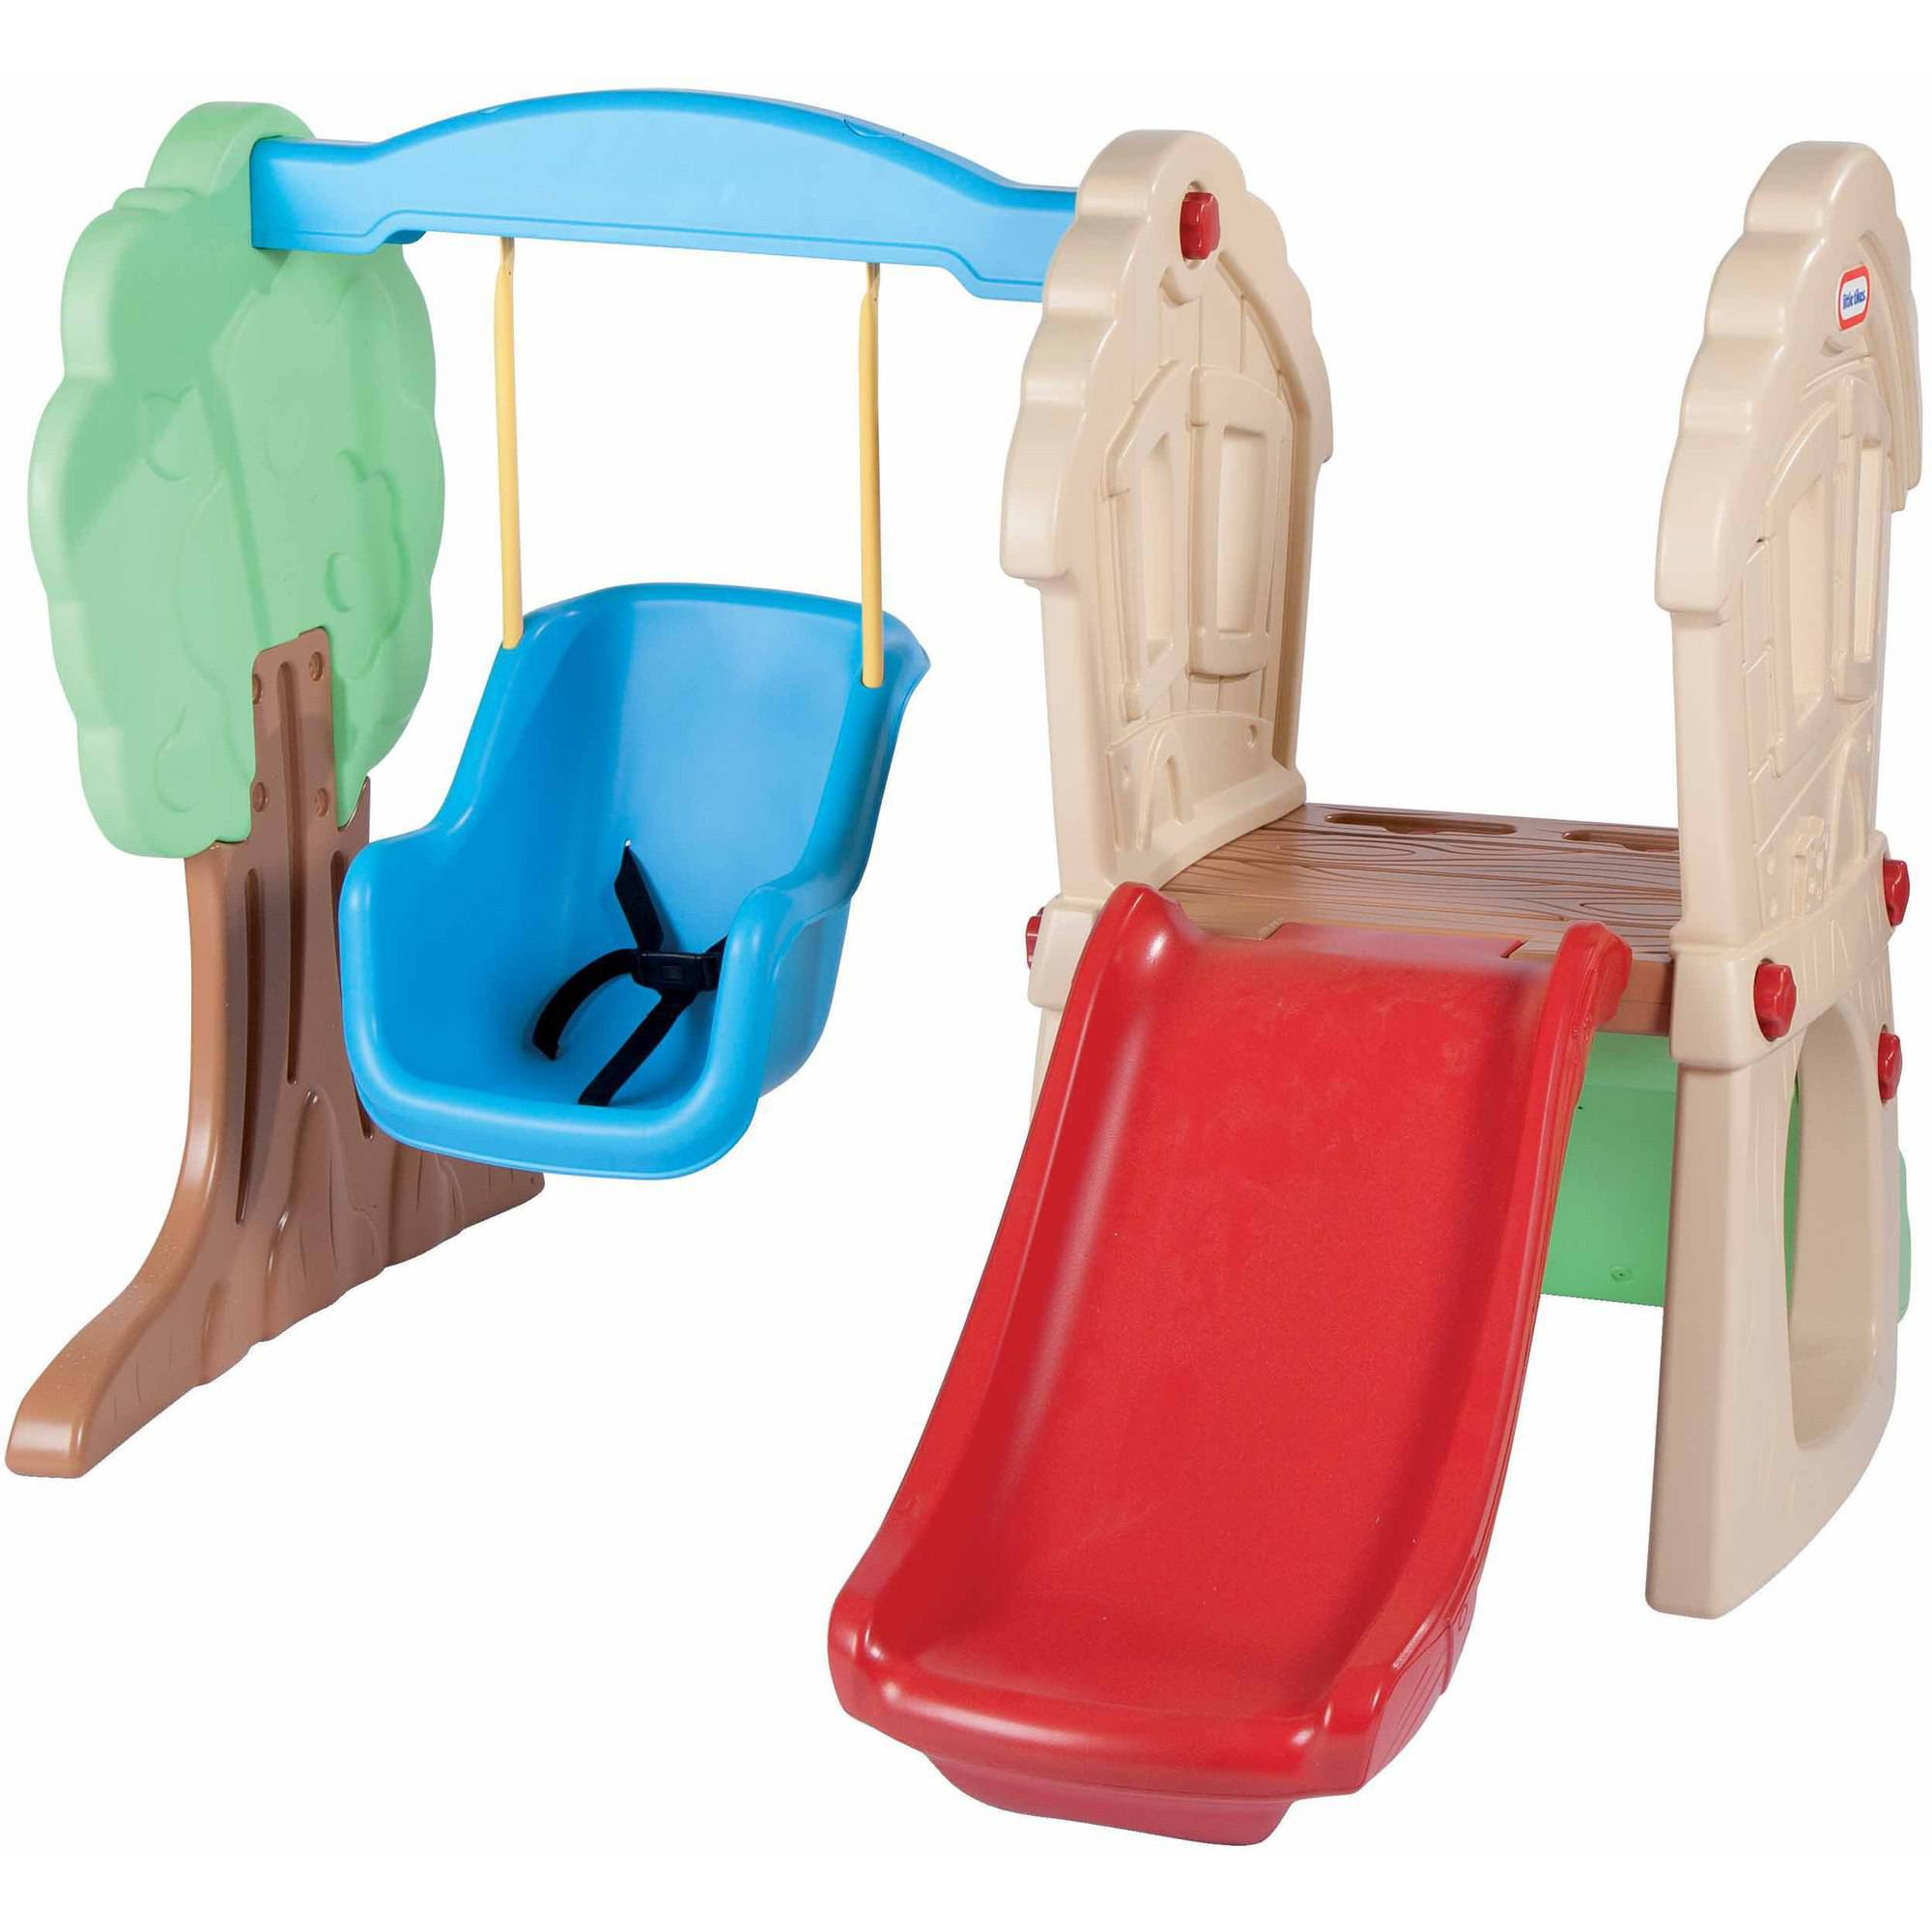 Little Tikes Hide & Slide Climber Walmart